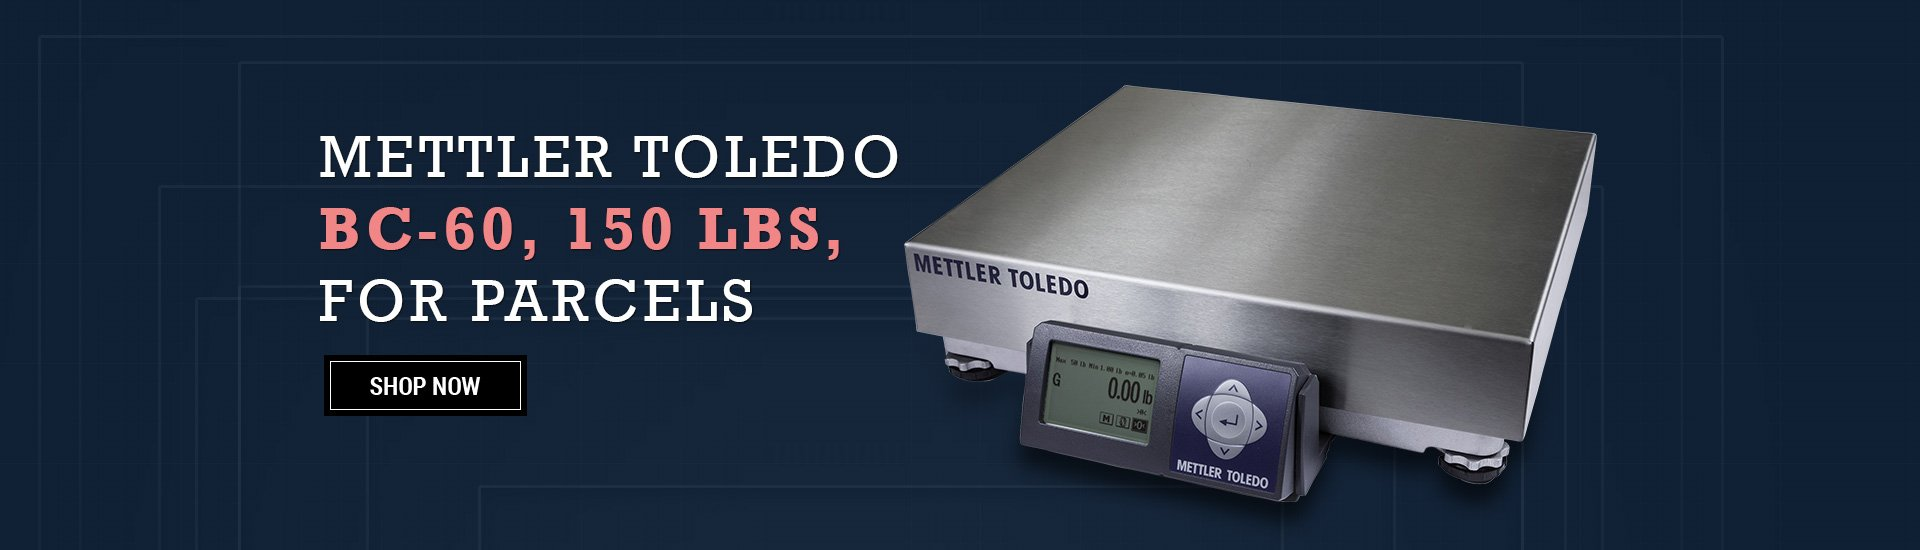 Mettler Toledo BC-6L , 150 lbs, for letters and parcels